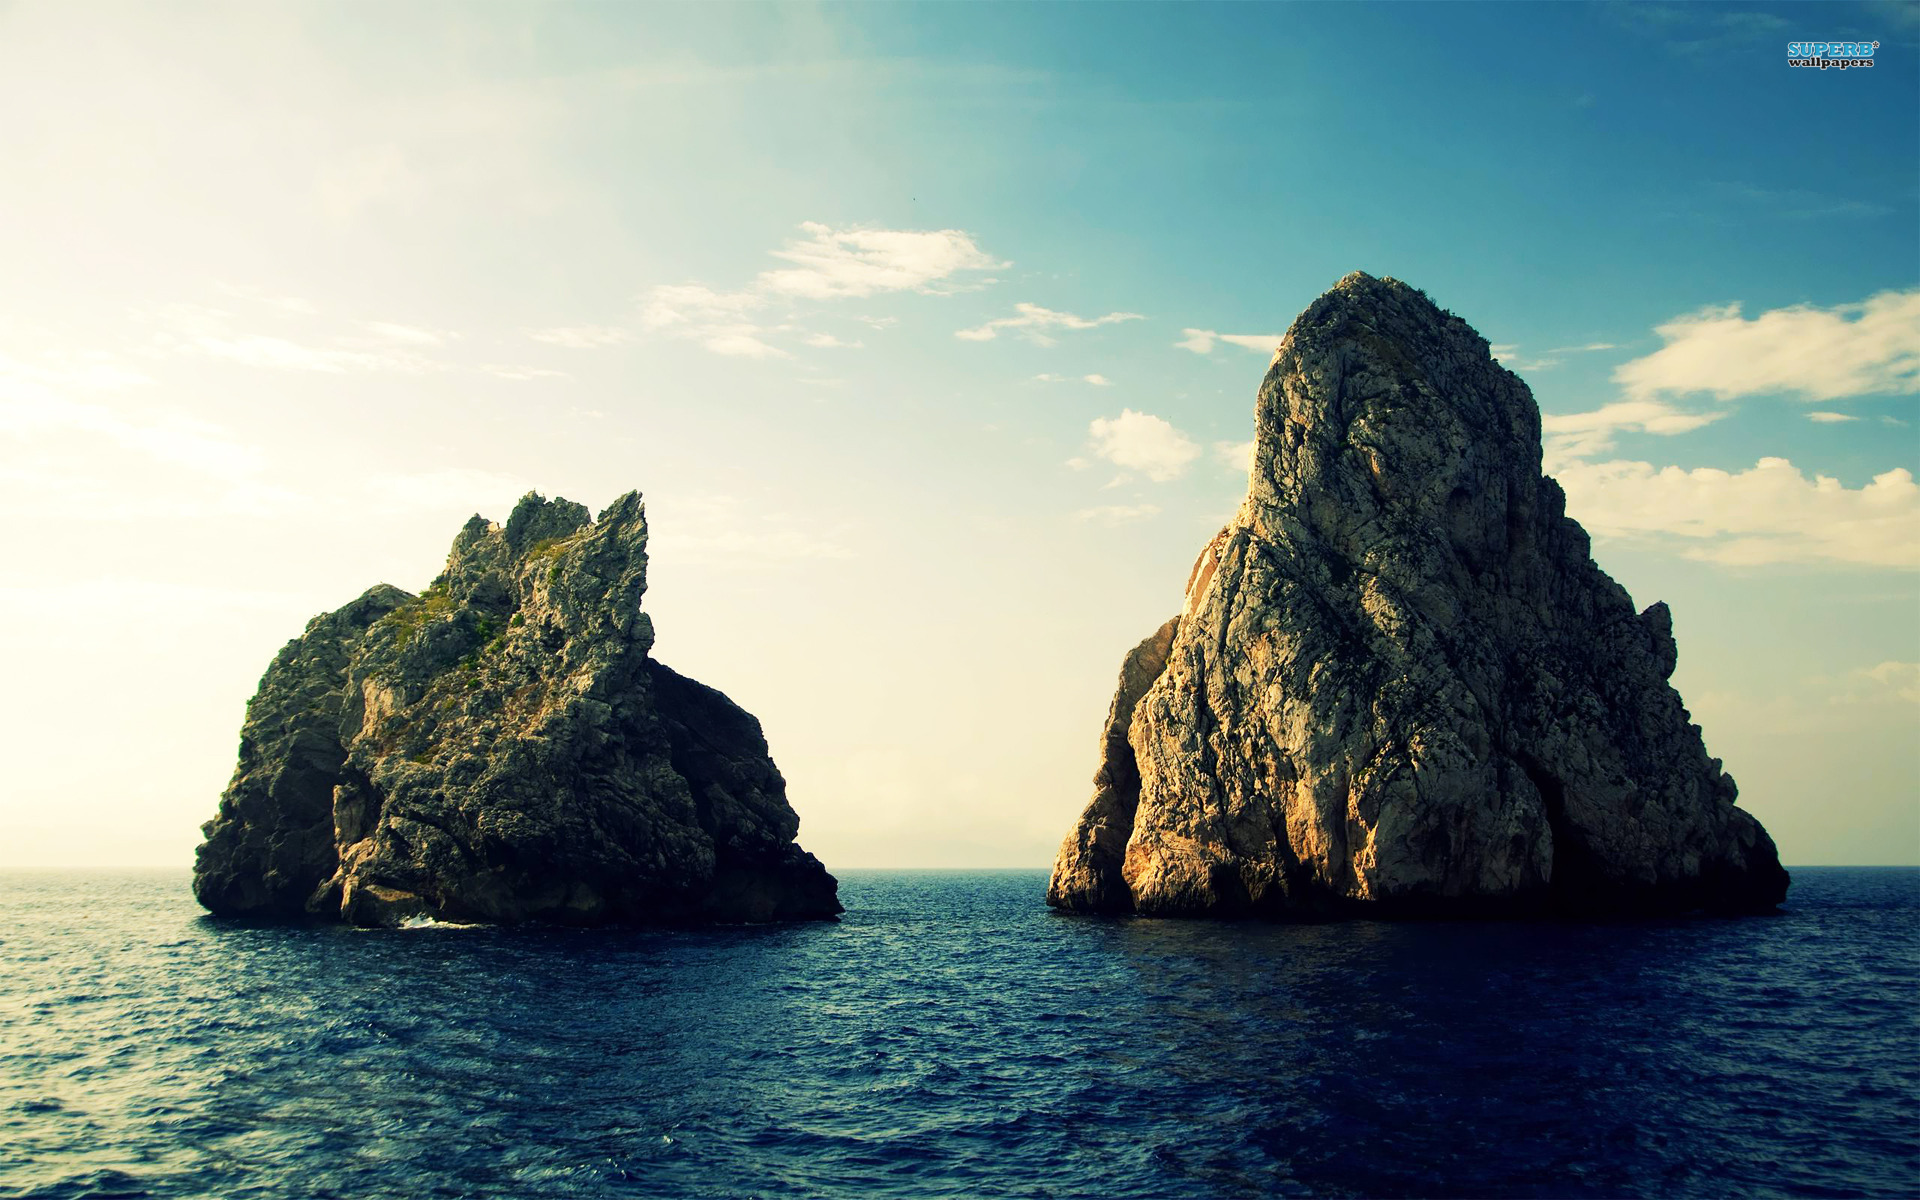 Rock formations in the ocean wallpaper 1920x1200